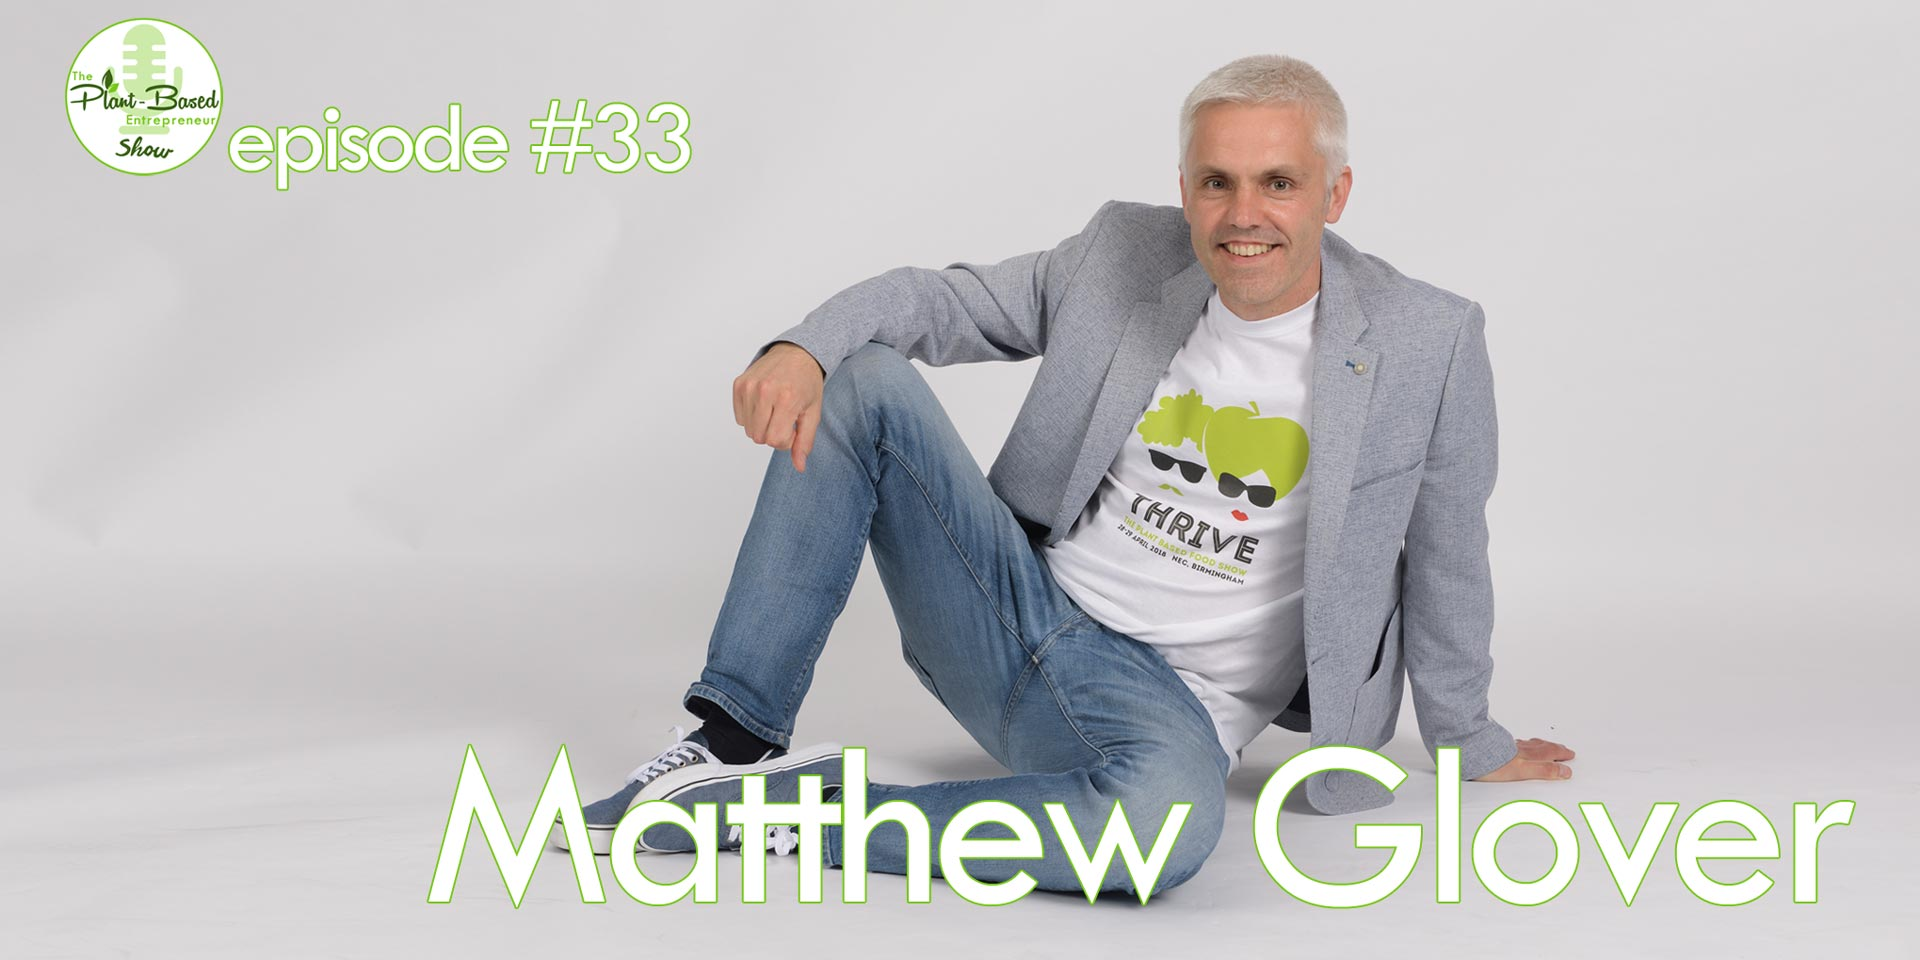 Episode #33 - Matthew Glover